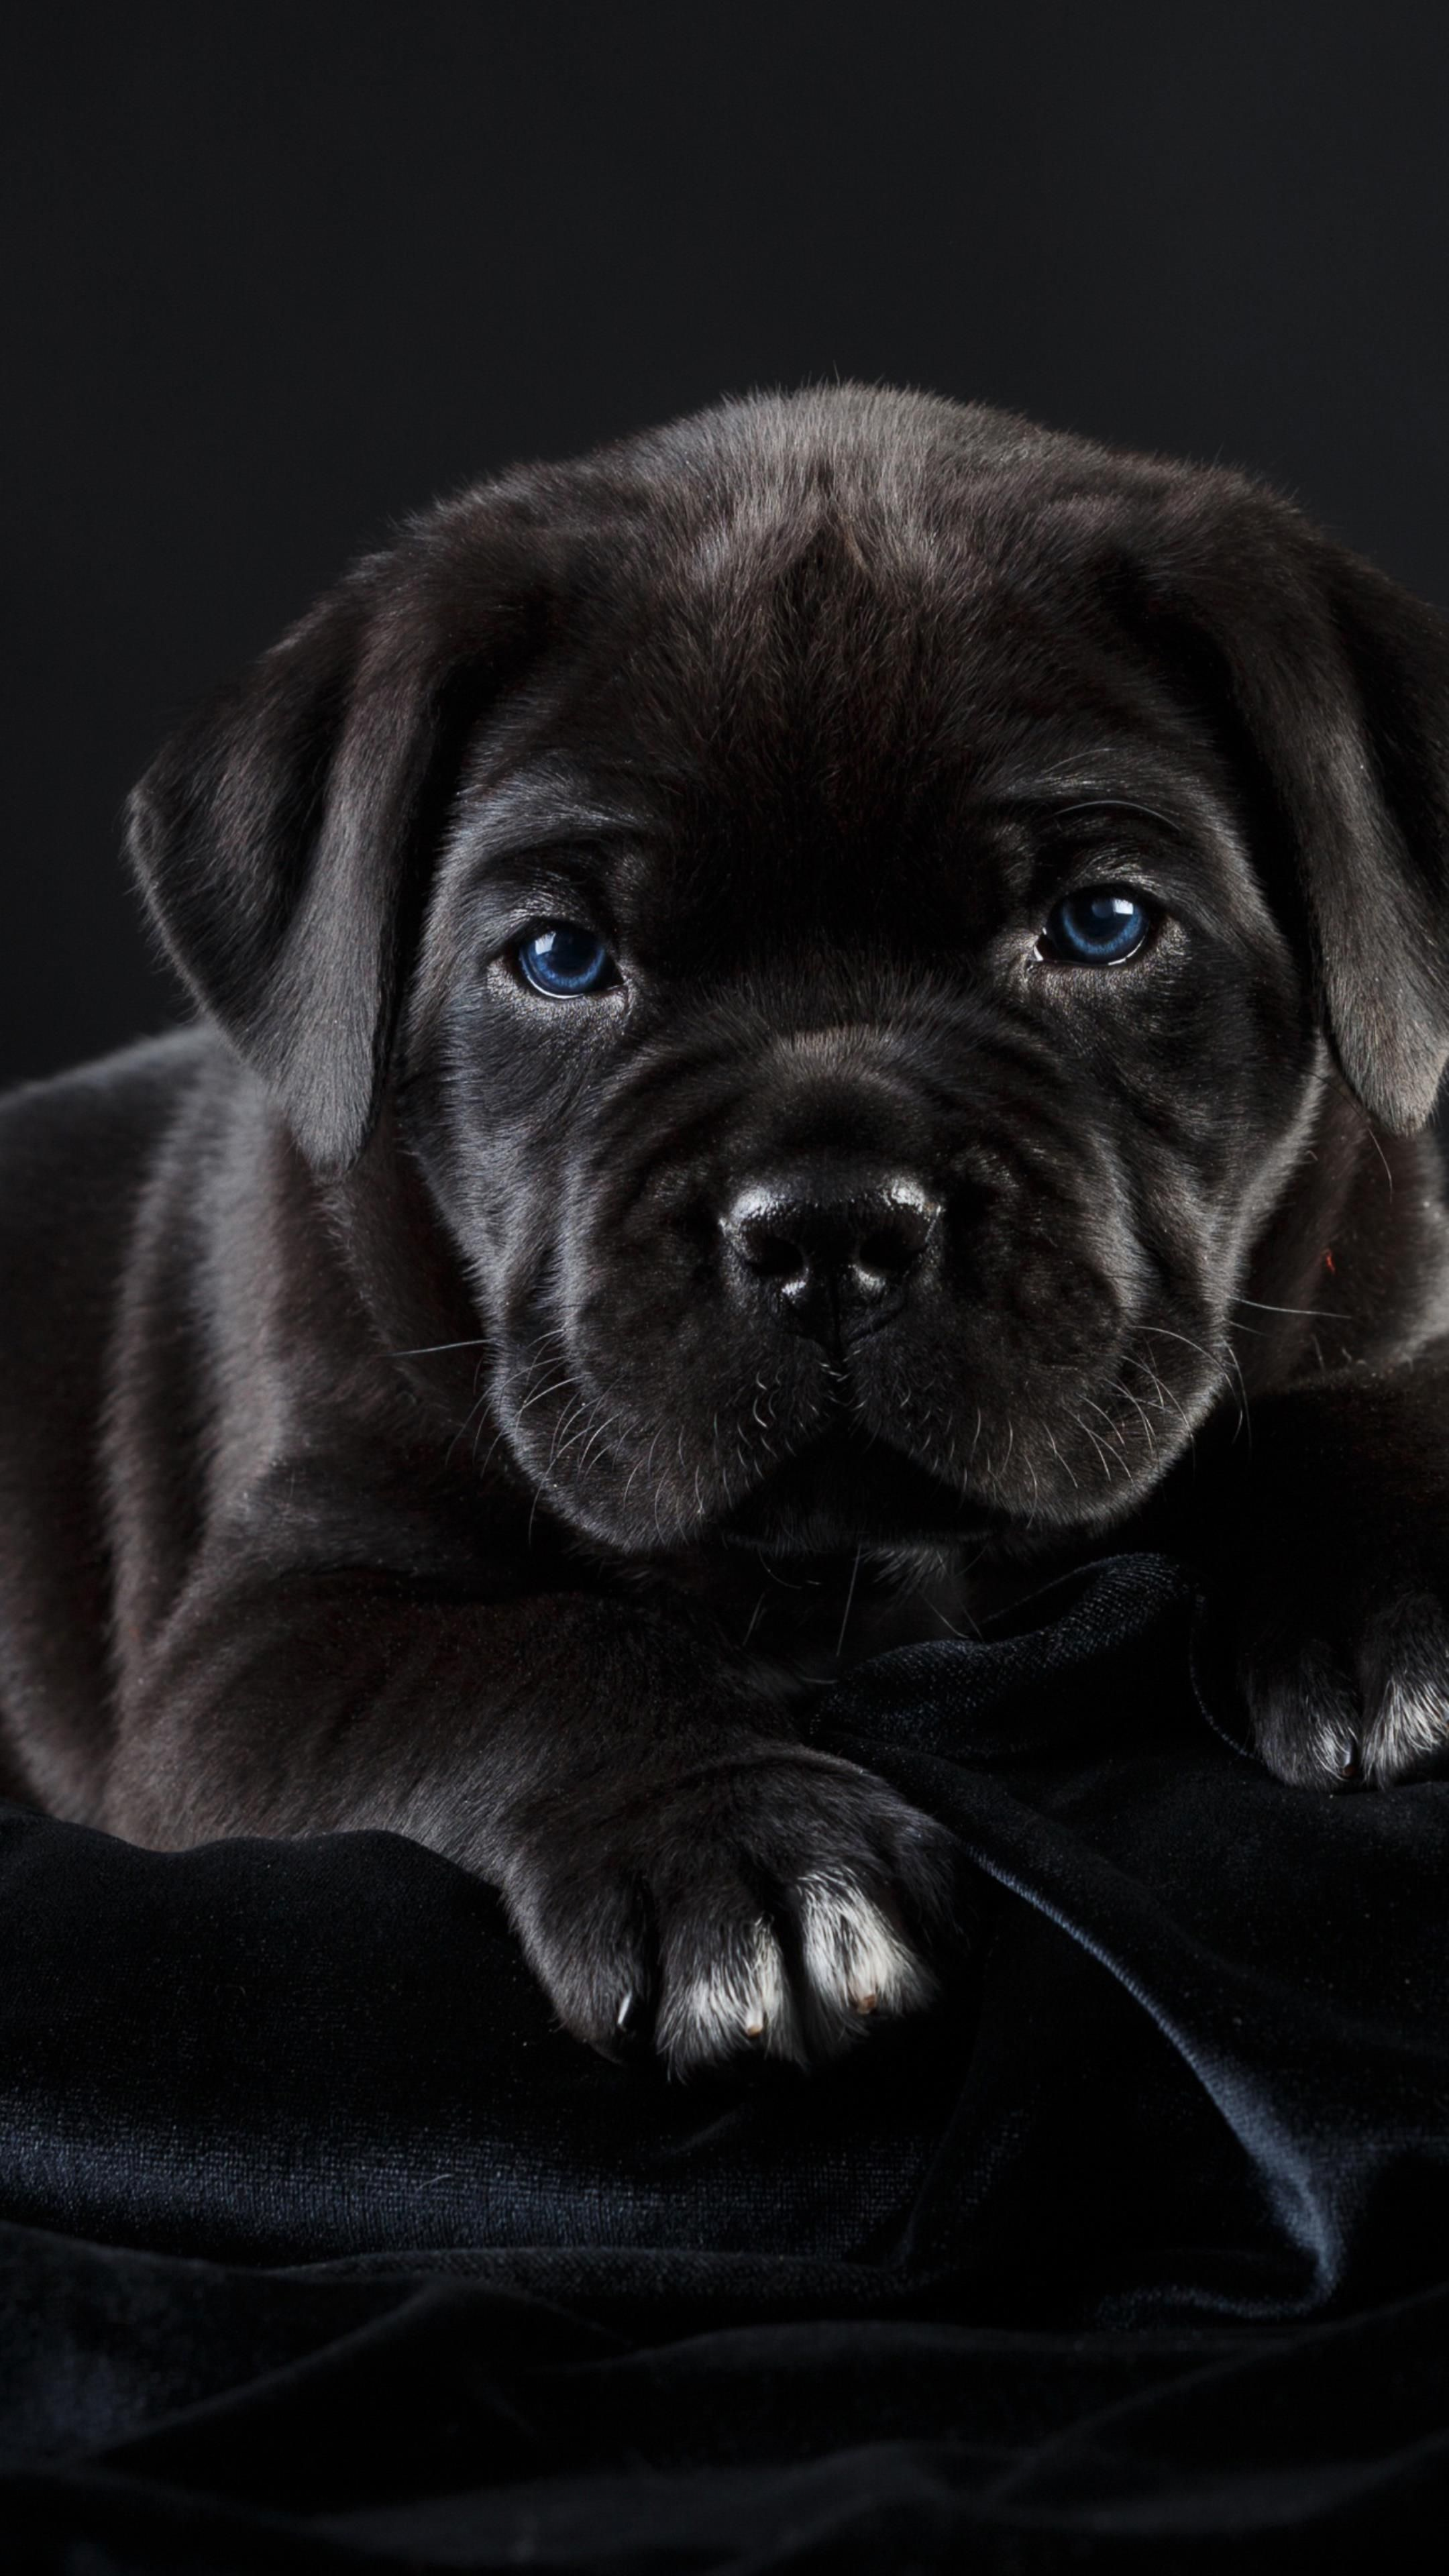 Amoled Animal Wallpaper Cute Puppy Wallpaper My Animal Dog Pictures